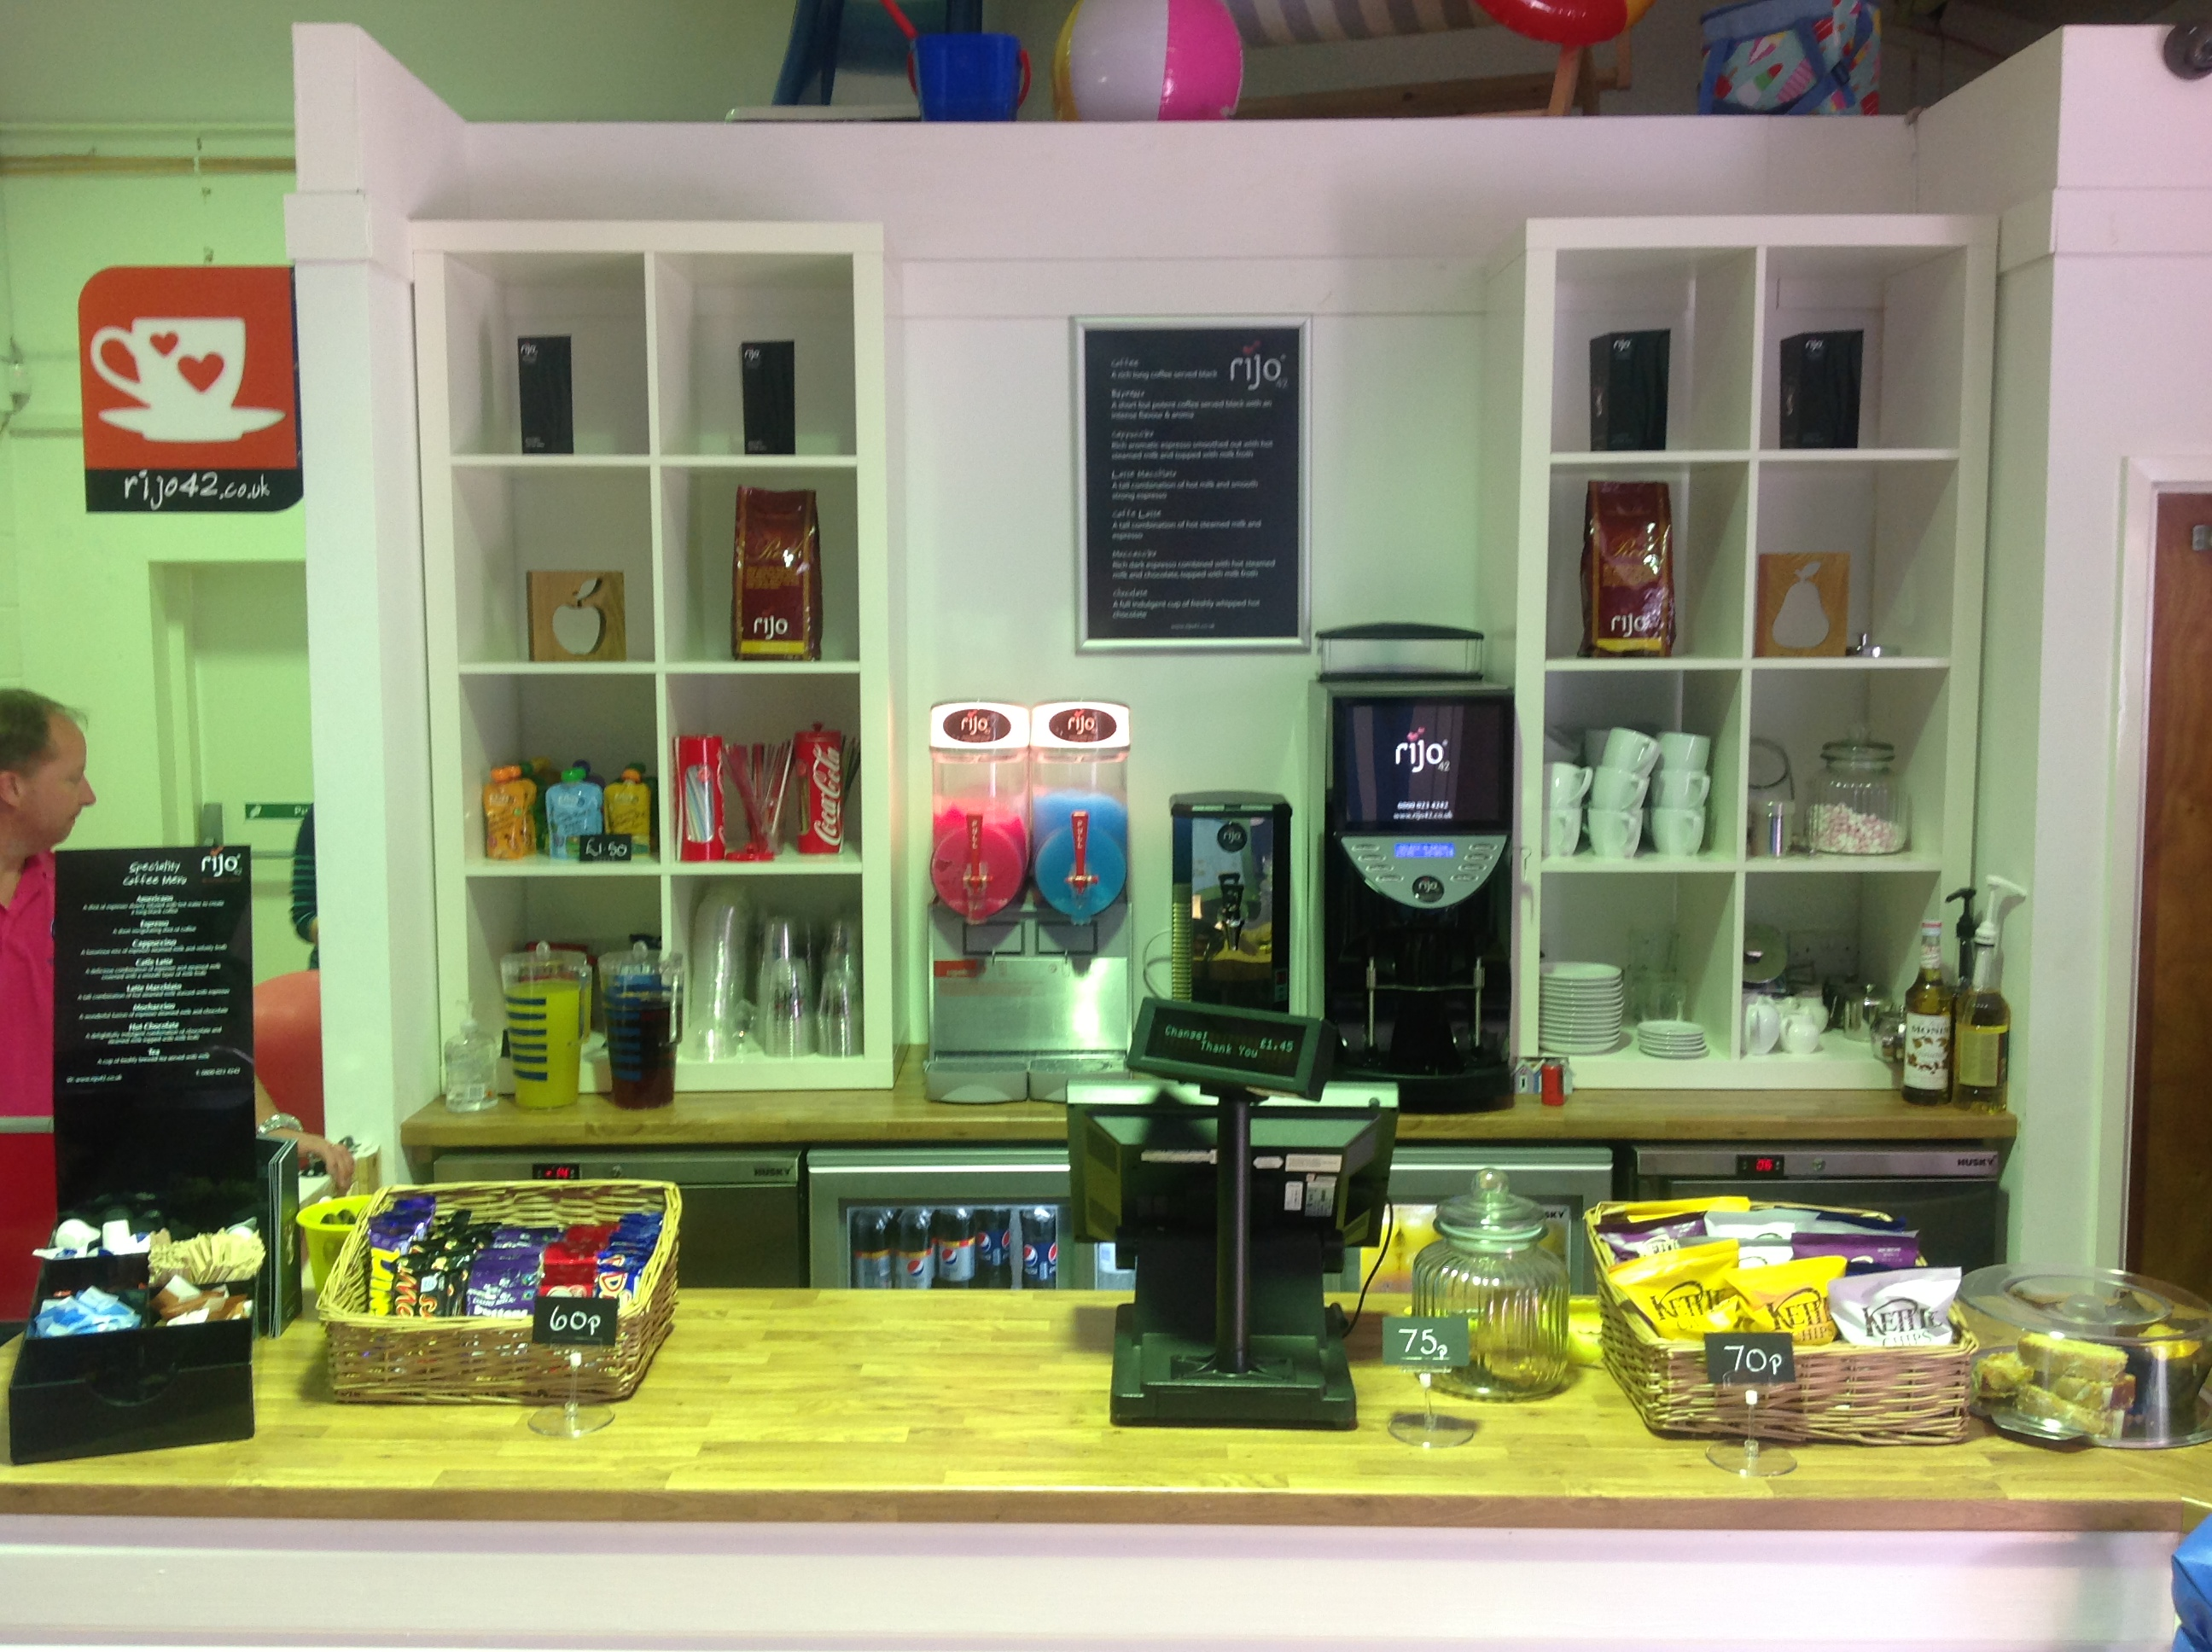 rijo42 Bean to Cup Coffee Machine In A Play Centre